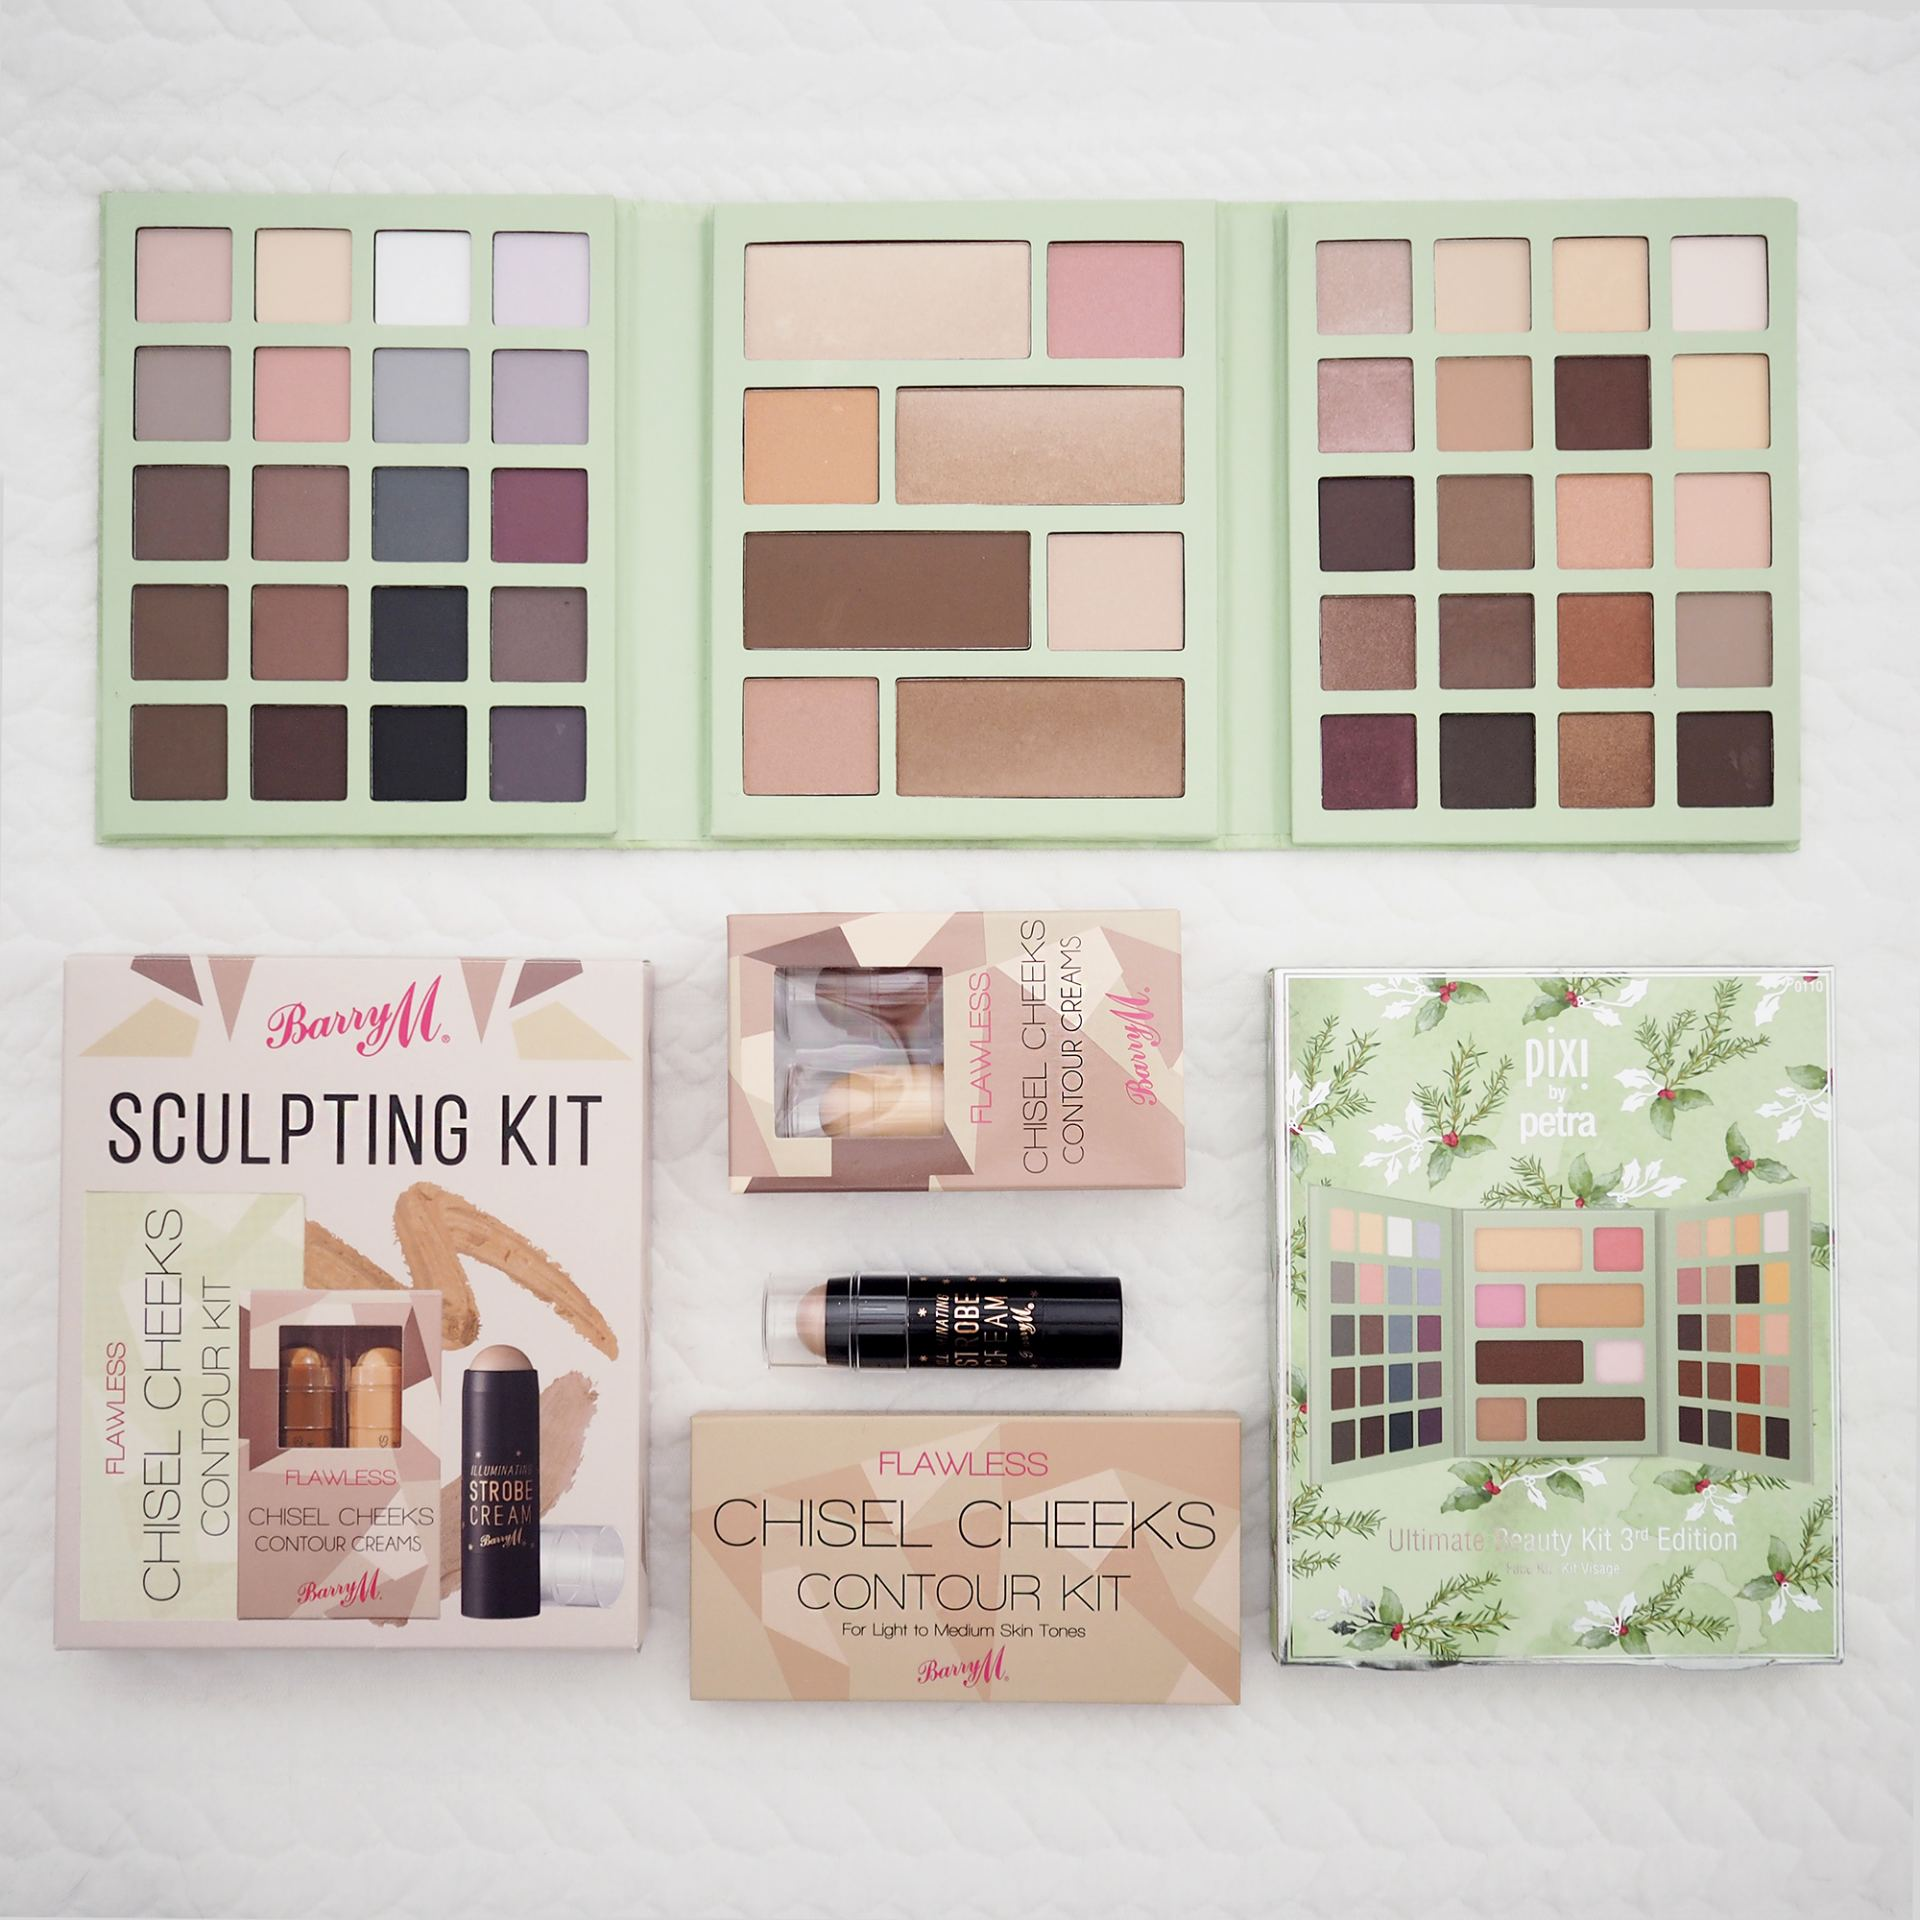 Pixi makeup palette and barry m contour kit